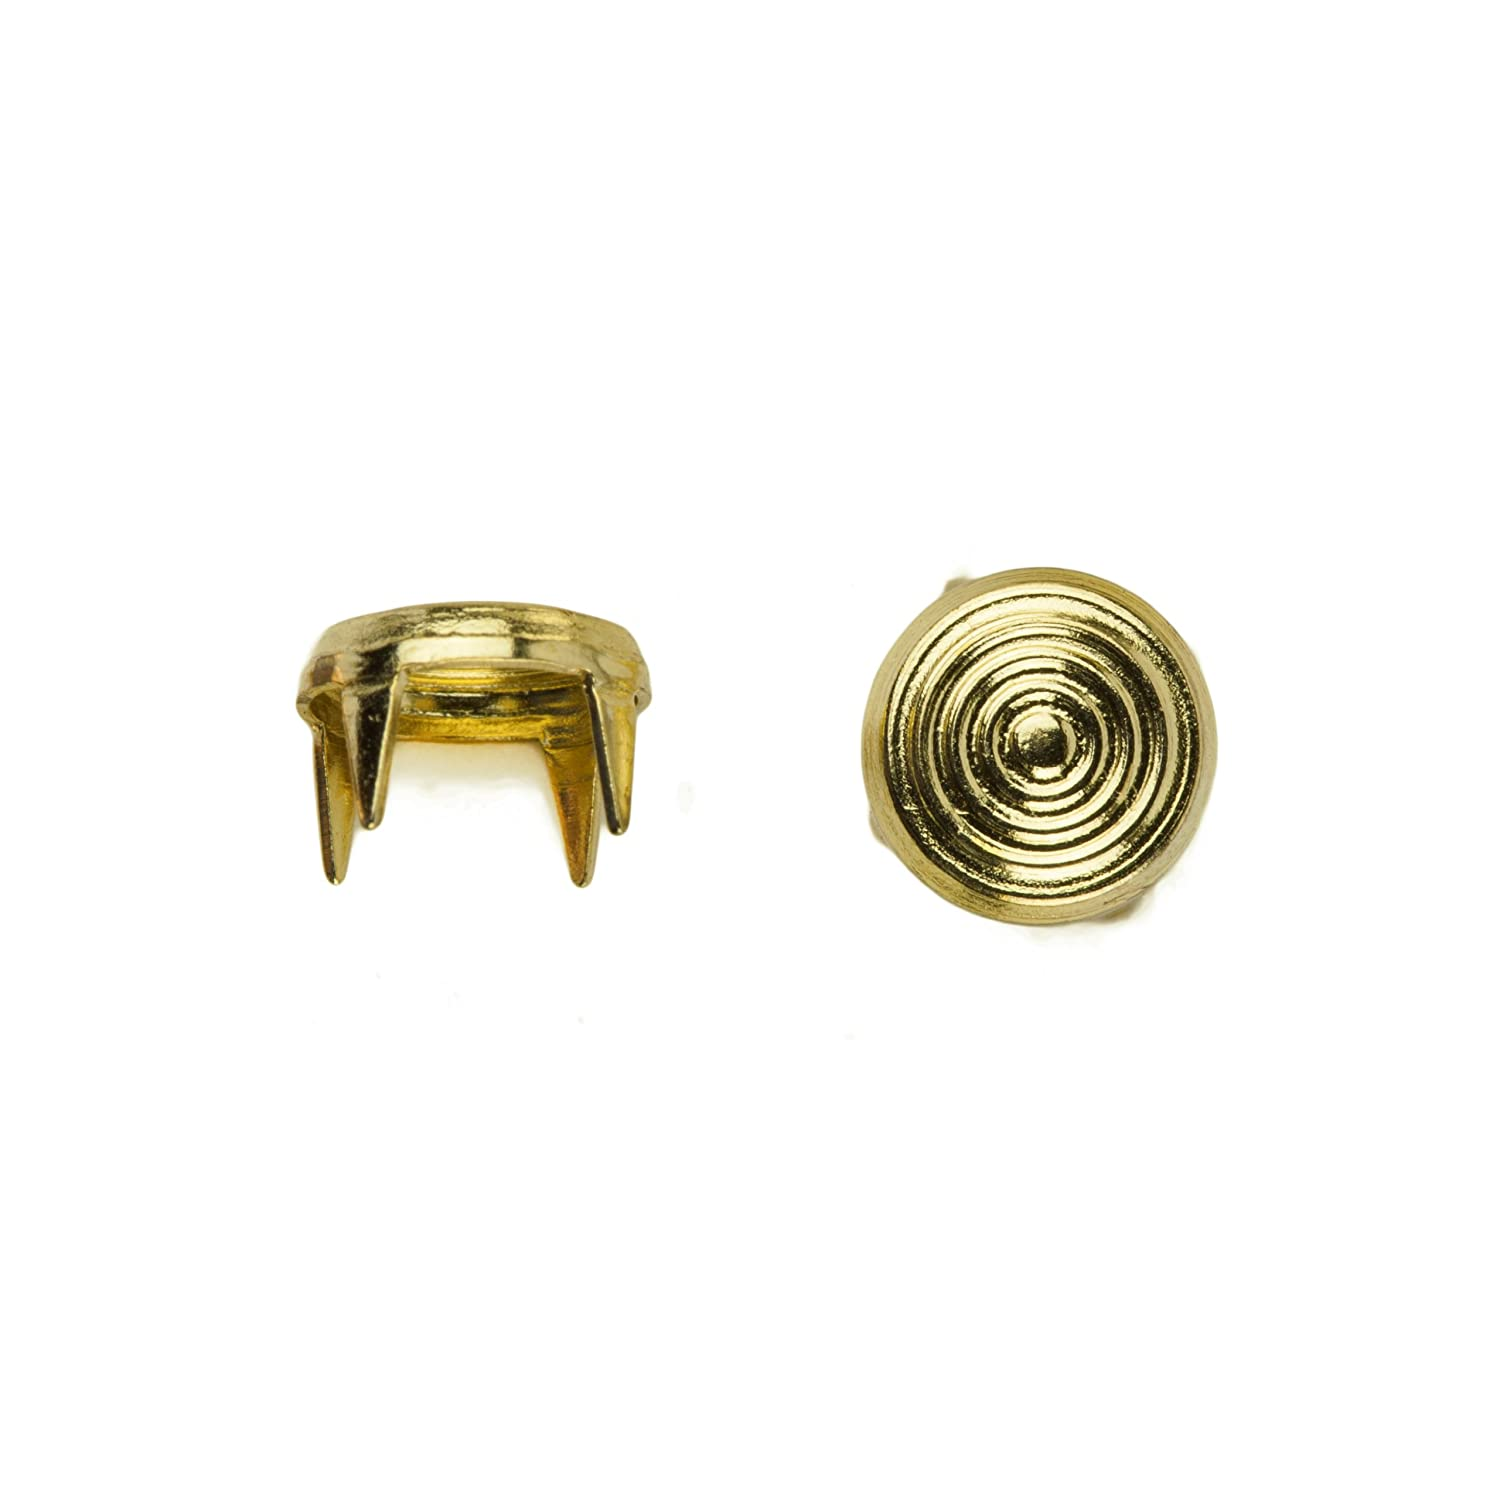 C C Metal Products Corp 6220 Concentric Circle Nailhead Size 20 Solid Brass Gold 500 Pack